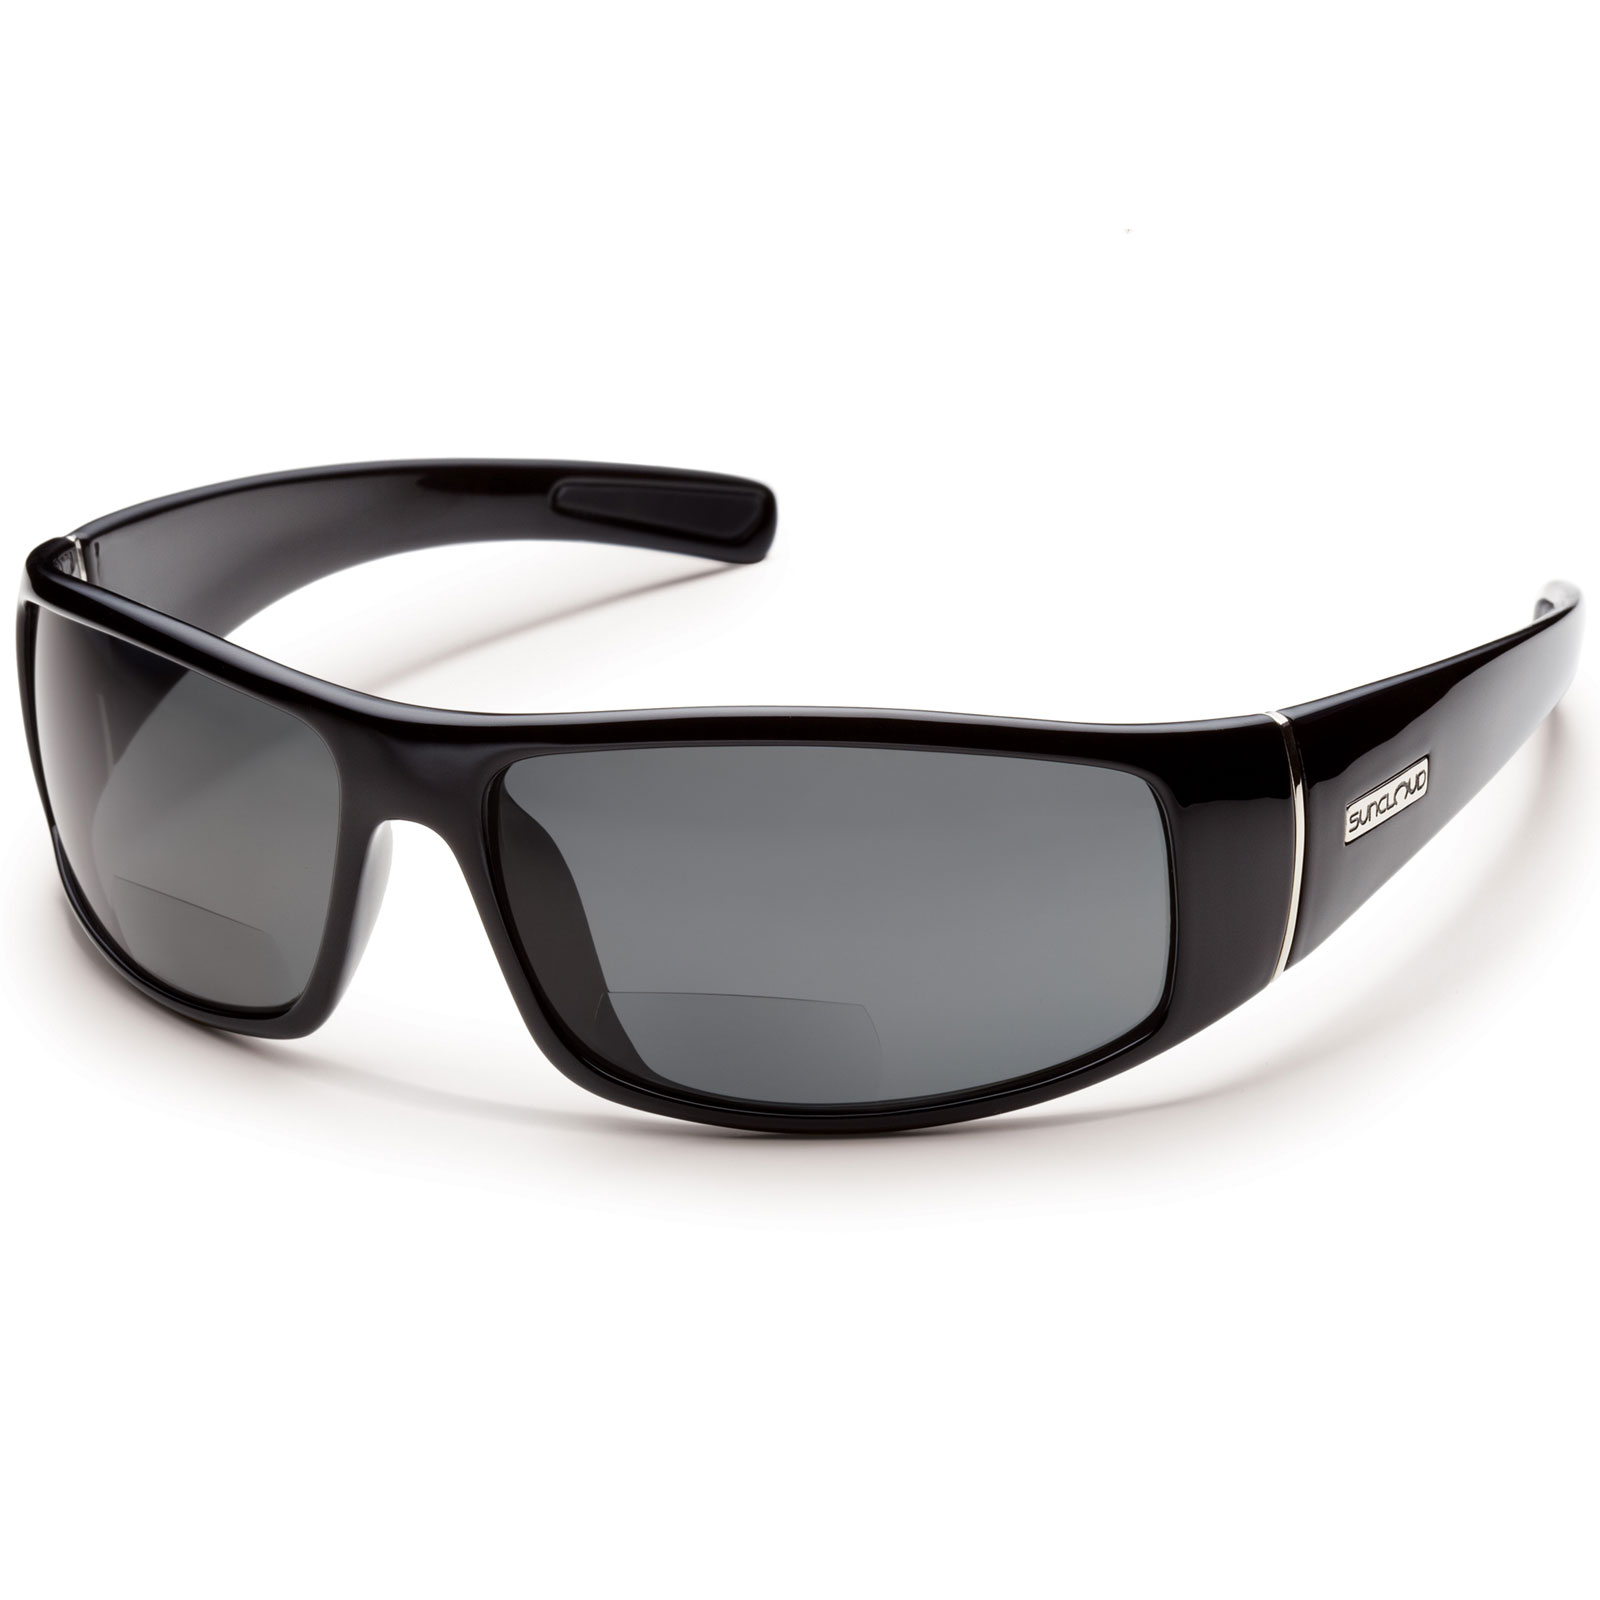 Sunglasses With Uv Protection And Polarized Www Panaust Com Au